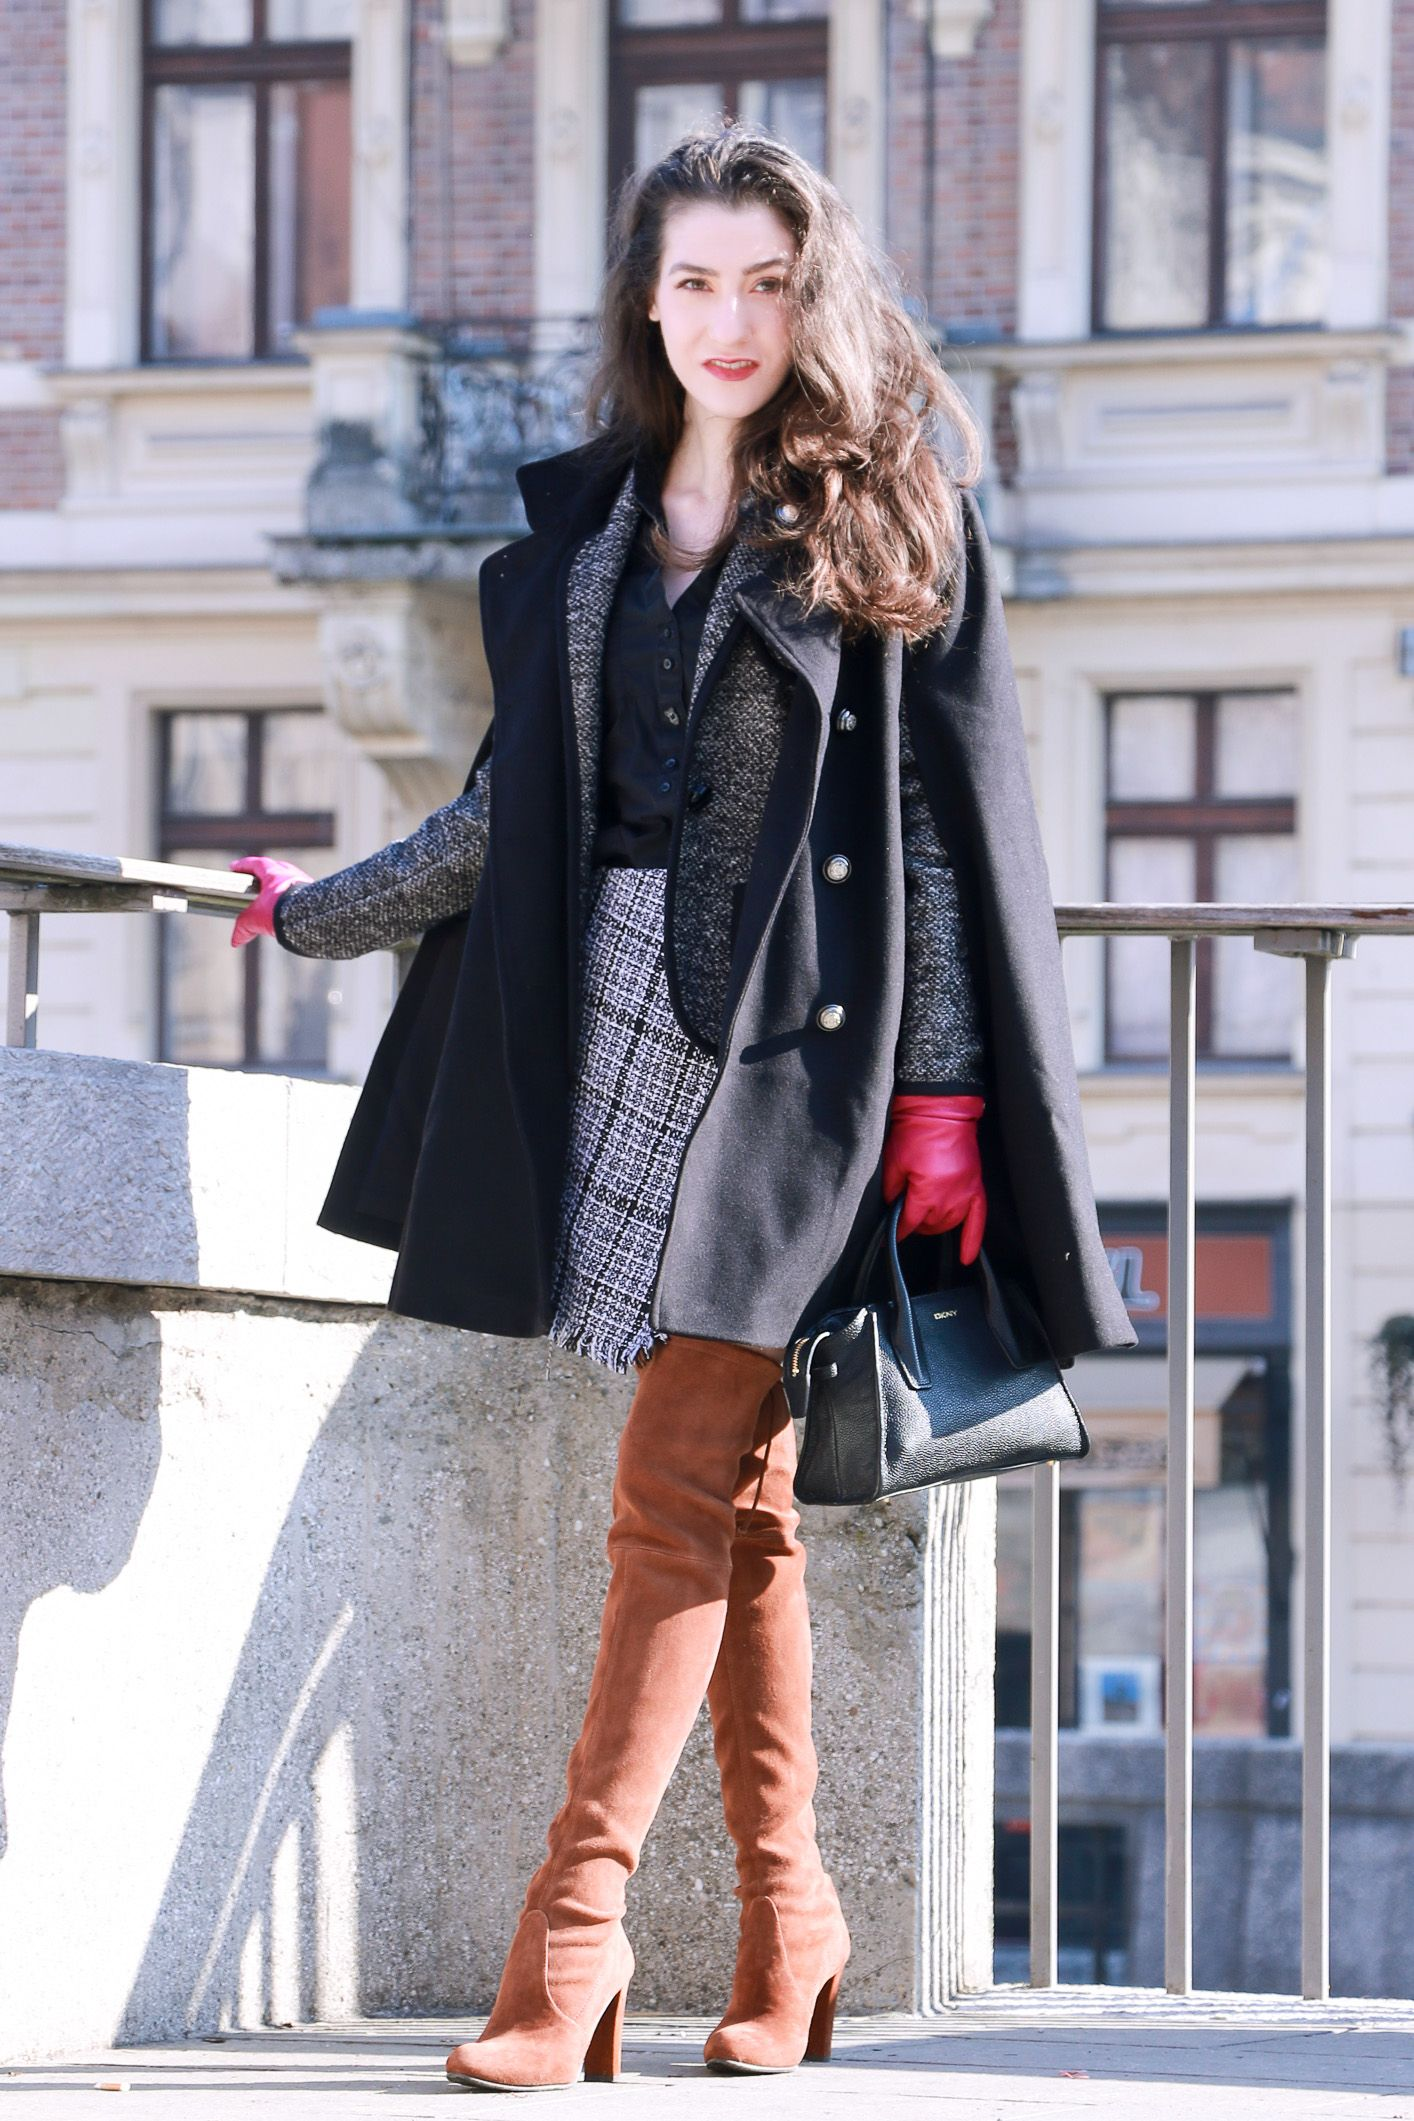 3254f38af Fashion blogger Veronika Lipar of Brunette From Wall Street sharing how to  wear the over the knee boots to work regarding the business casual code